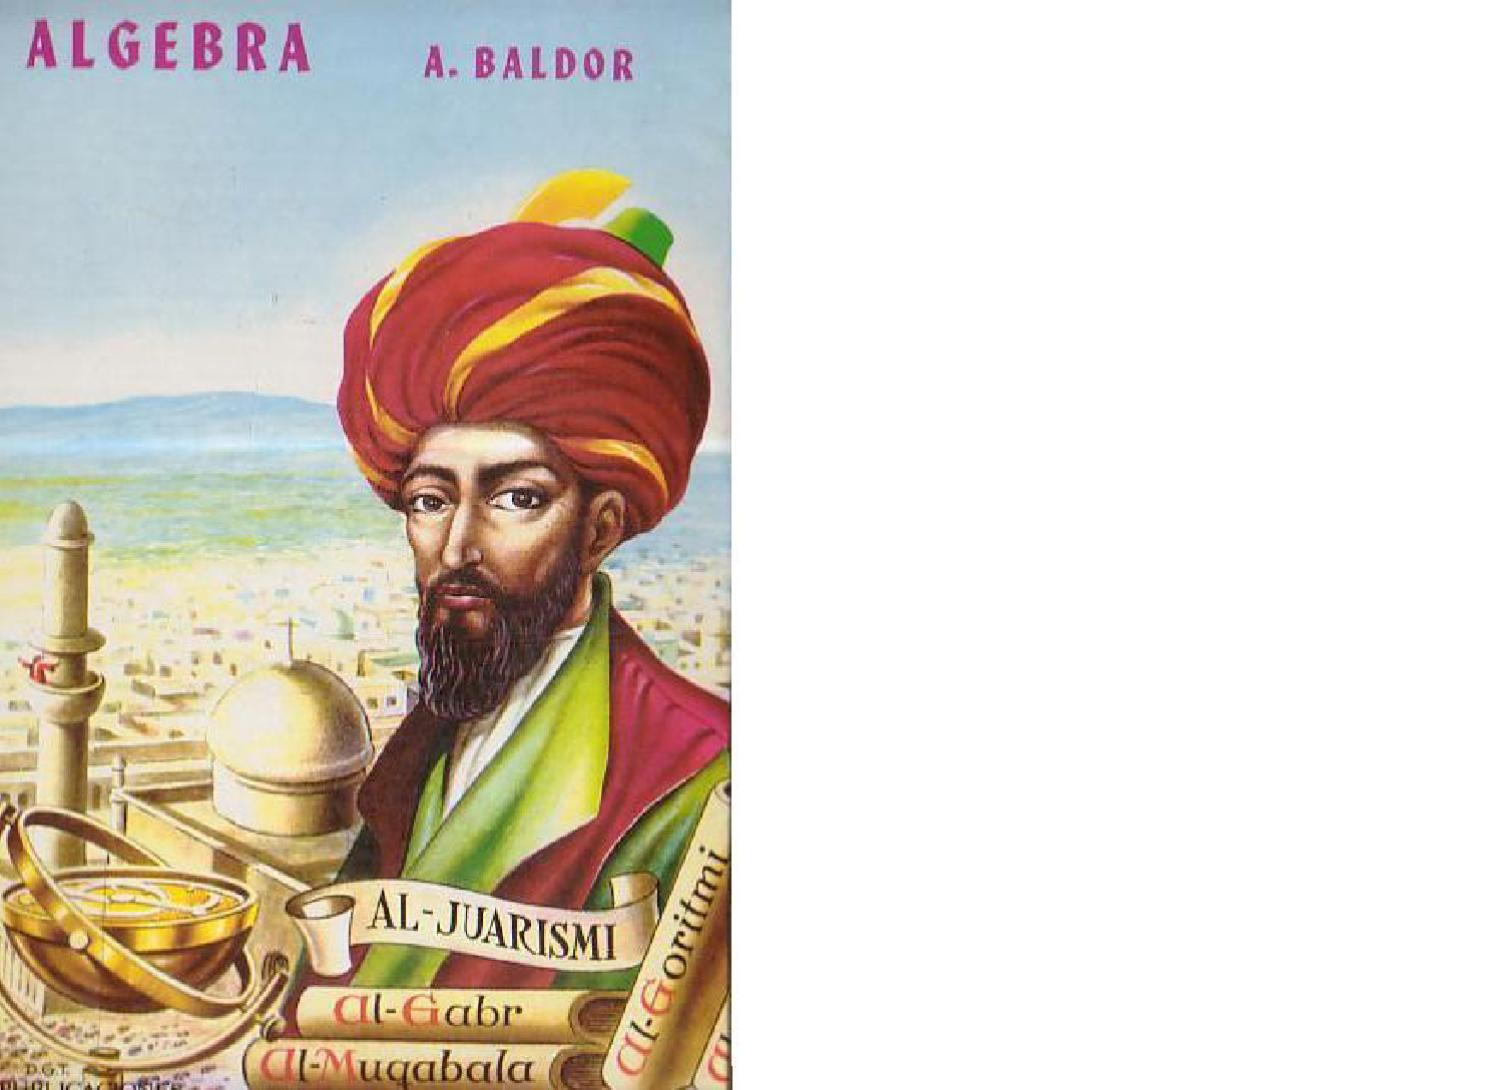 Aurelio Baldor Geometria Y Trigonometria Ebook Download